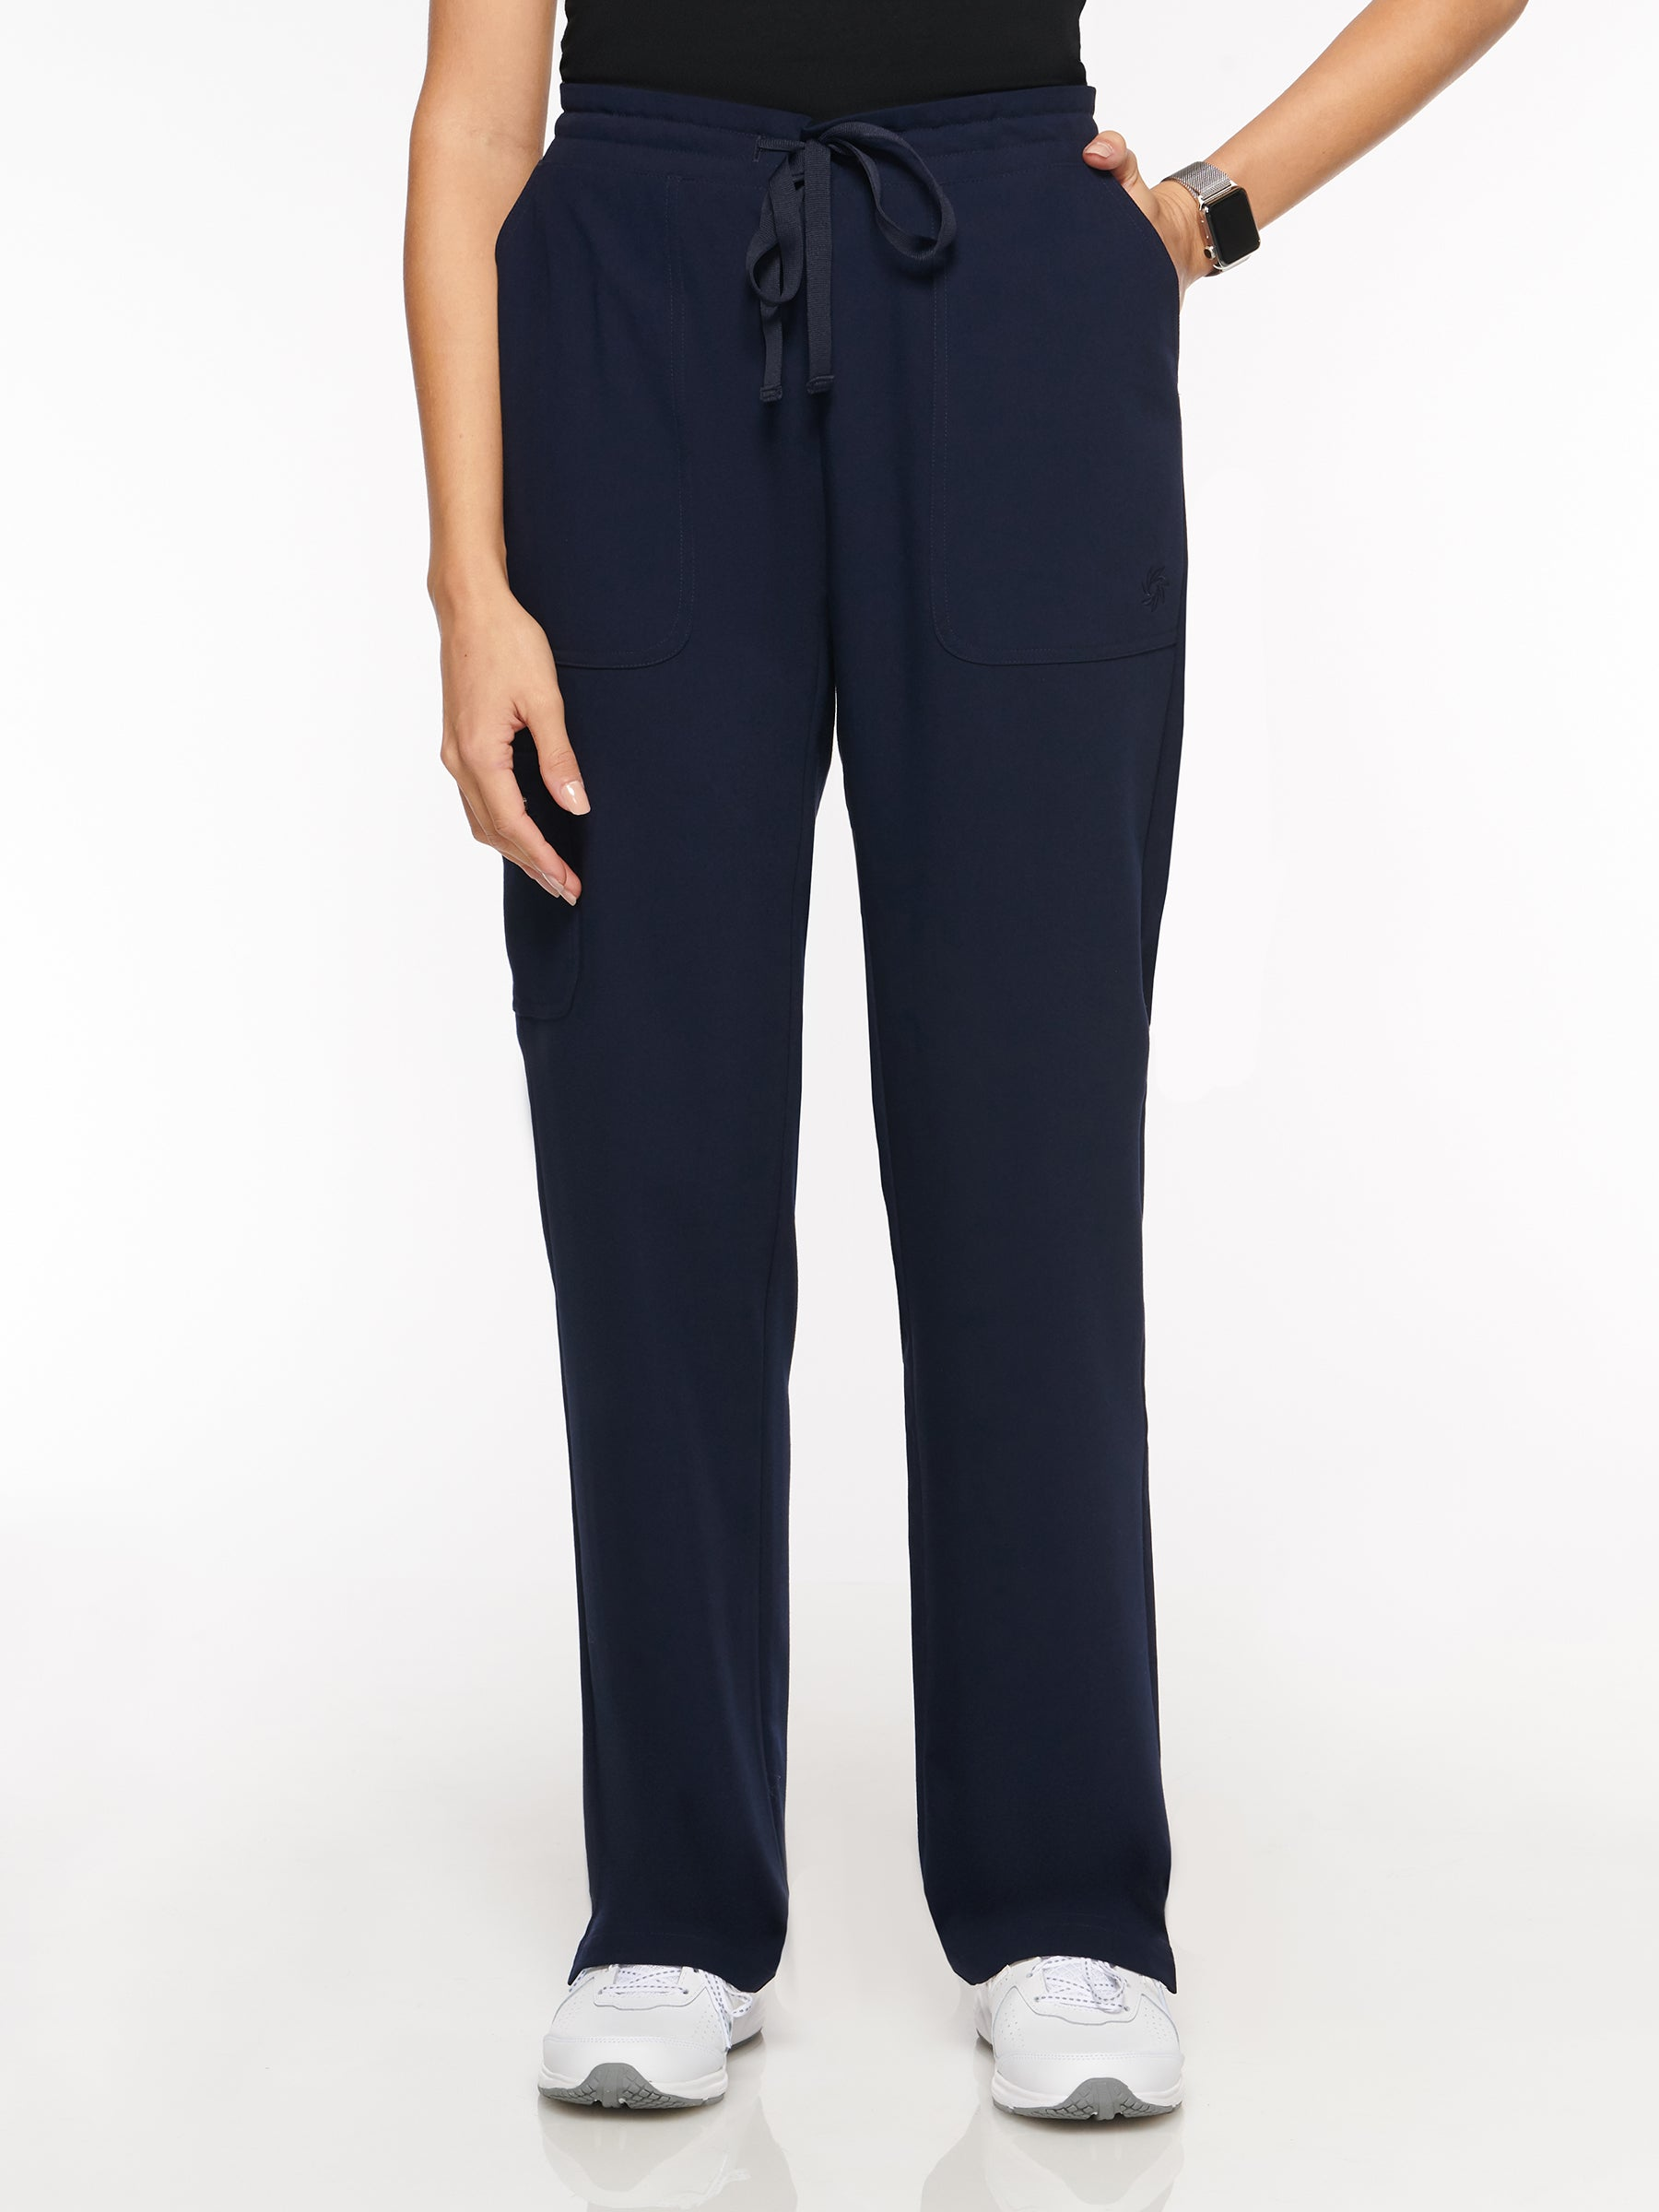 Womens Pant Classic Elastic Pant with 7 Pockets – Regular (93001R) - A Plus Medical Scrubs